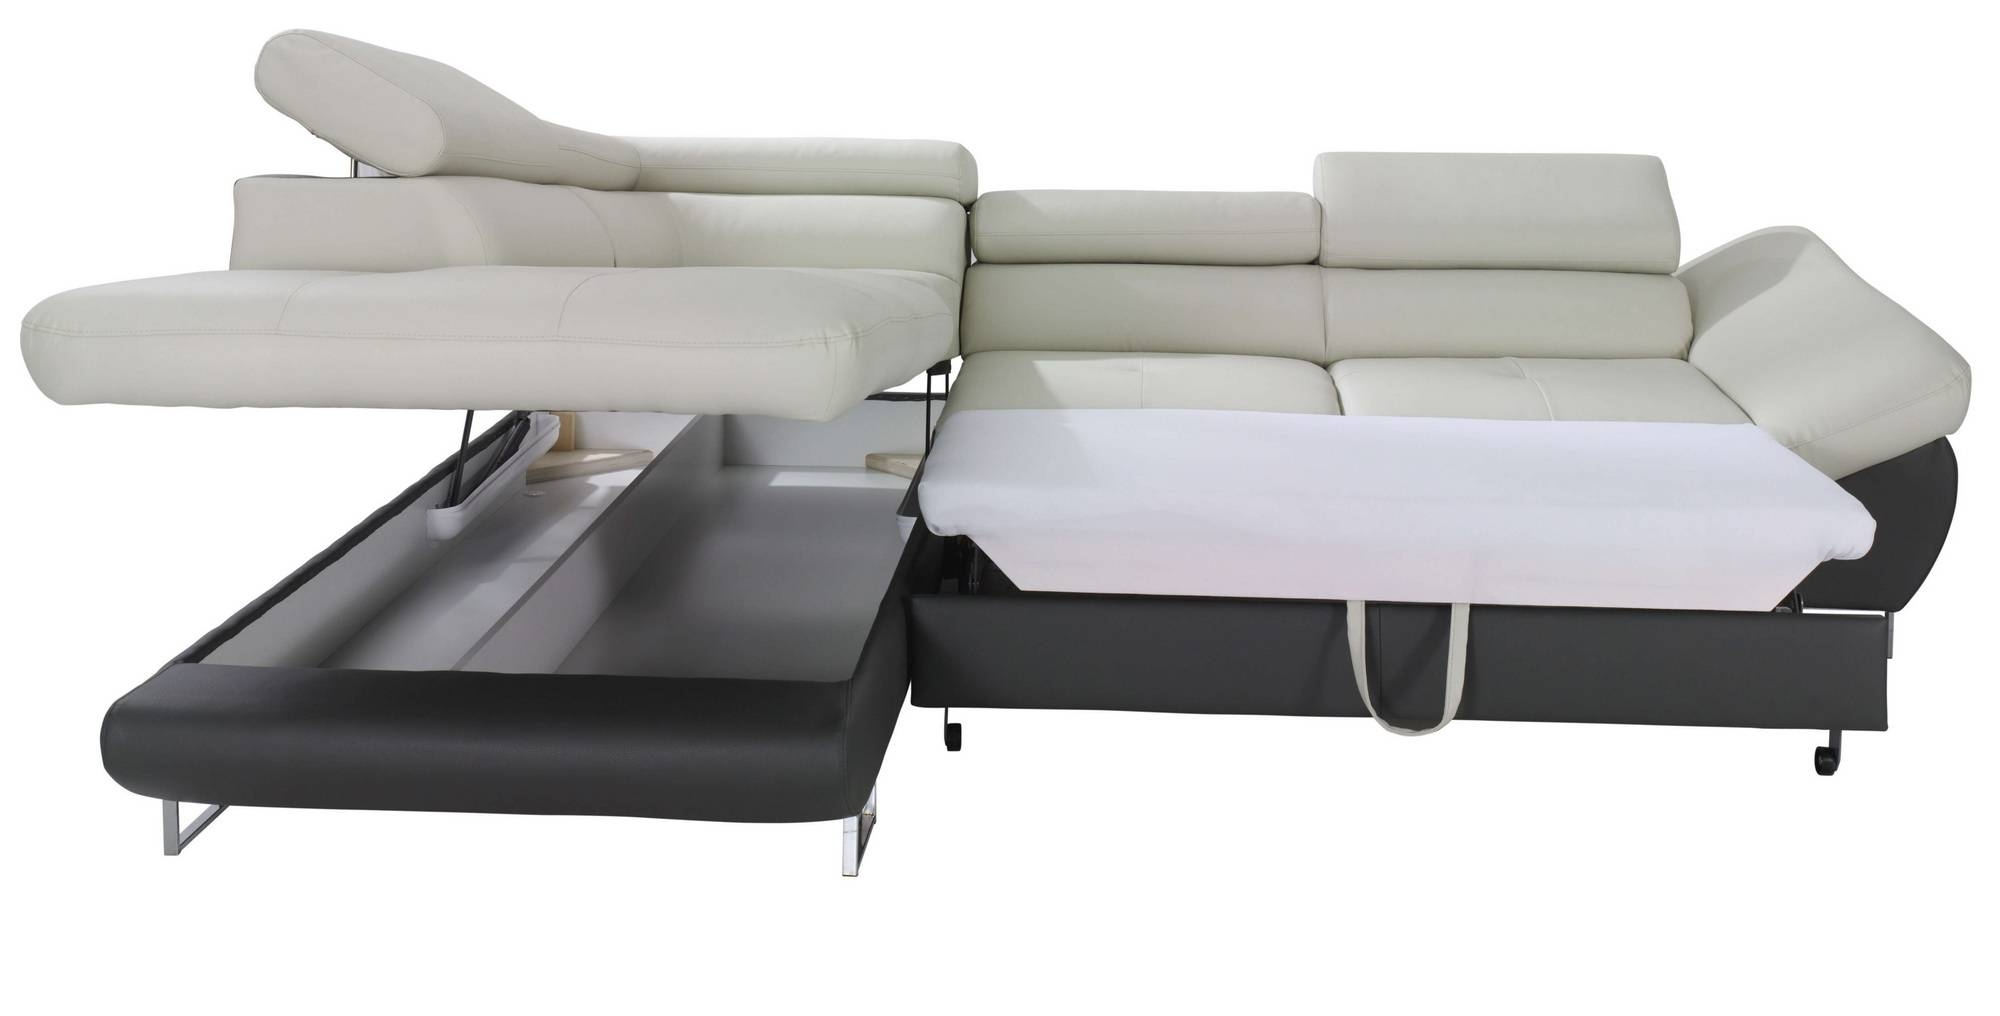 Fabio Sectional Sofa Sleeper With Storage, Creative Furniture Intended For Sectional Sofa Bed With Storage (View 5 of 25)